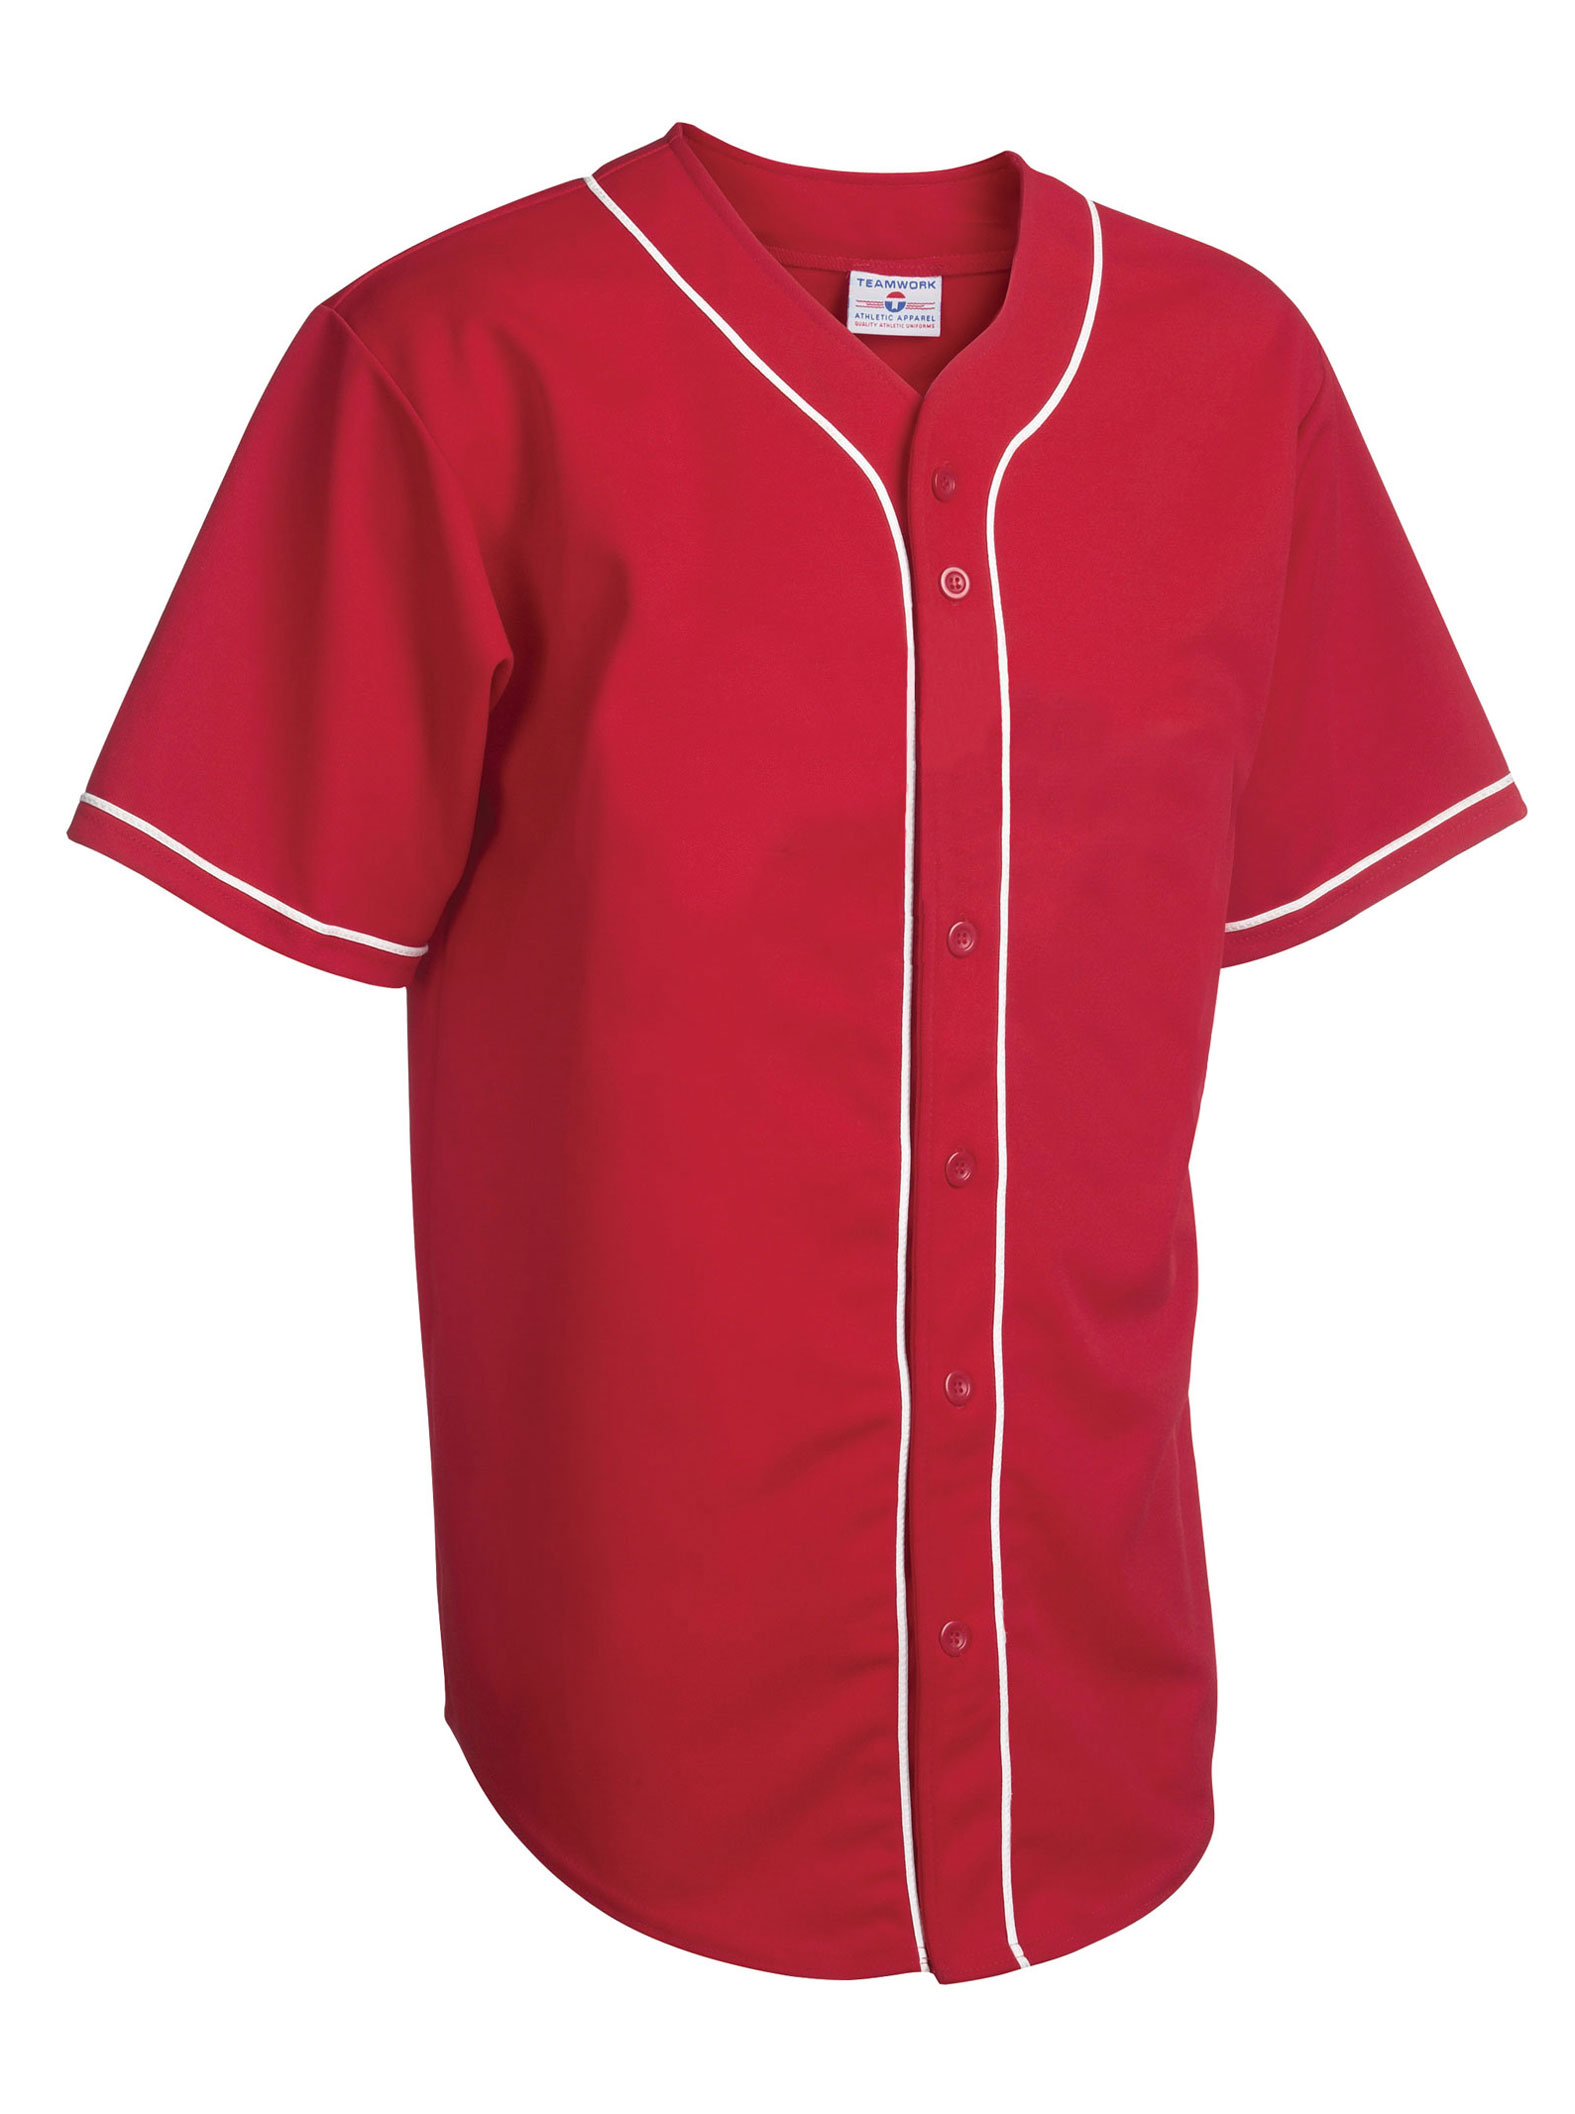 Teamwork Adult Walk Off Baseball Jersey with Sewn-On Braid - CLOSEOUT